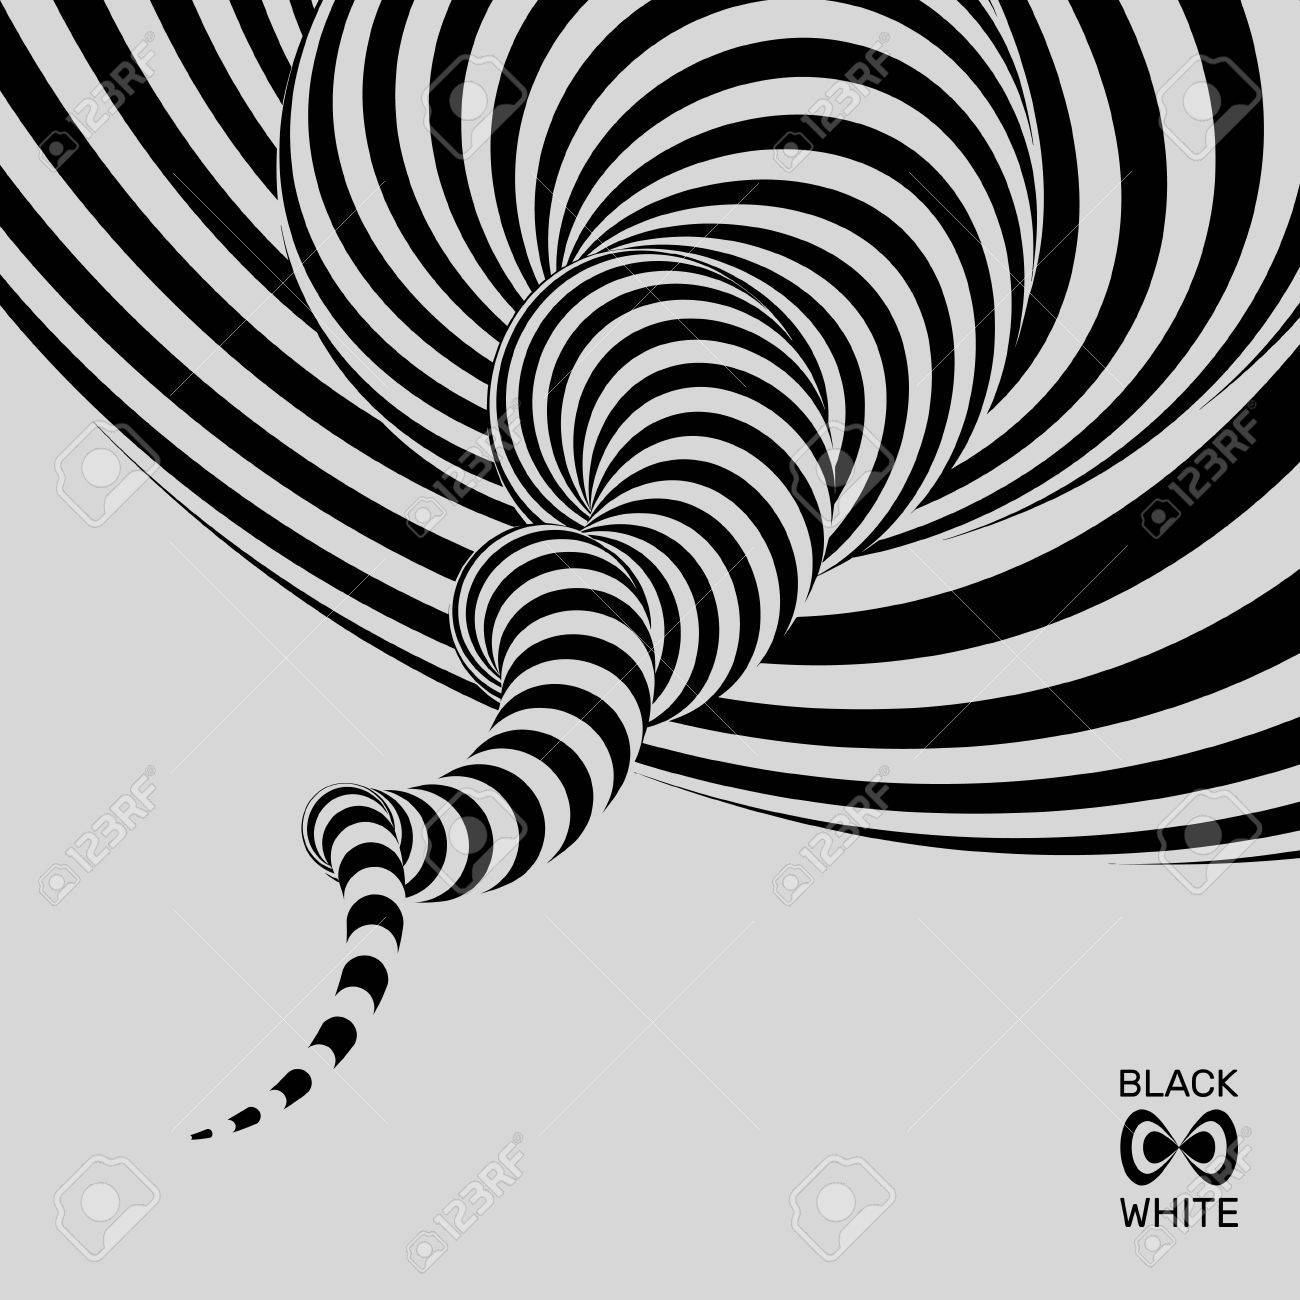 Tunnel abstract 3d geometrical background black and white design